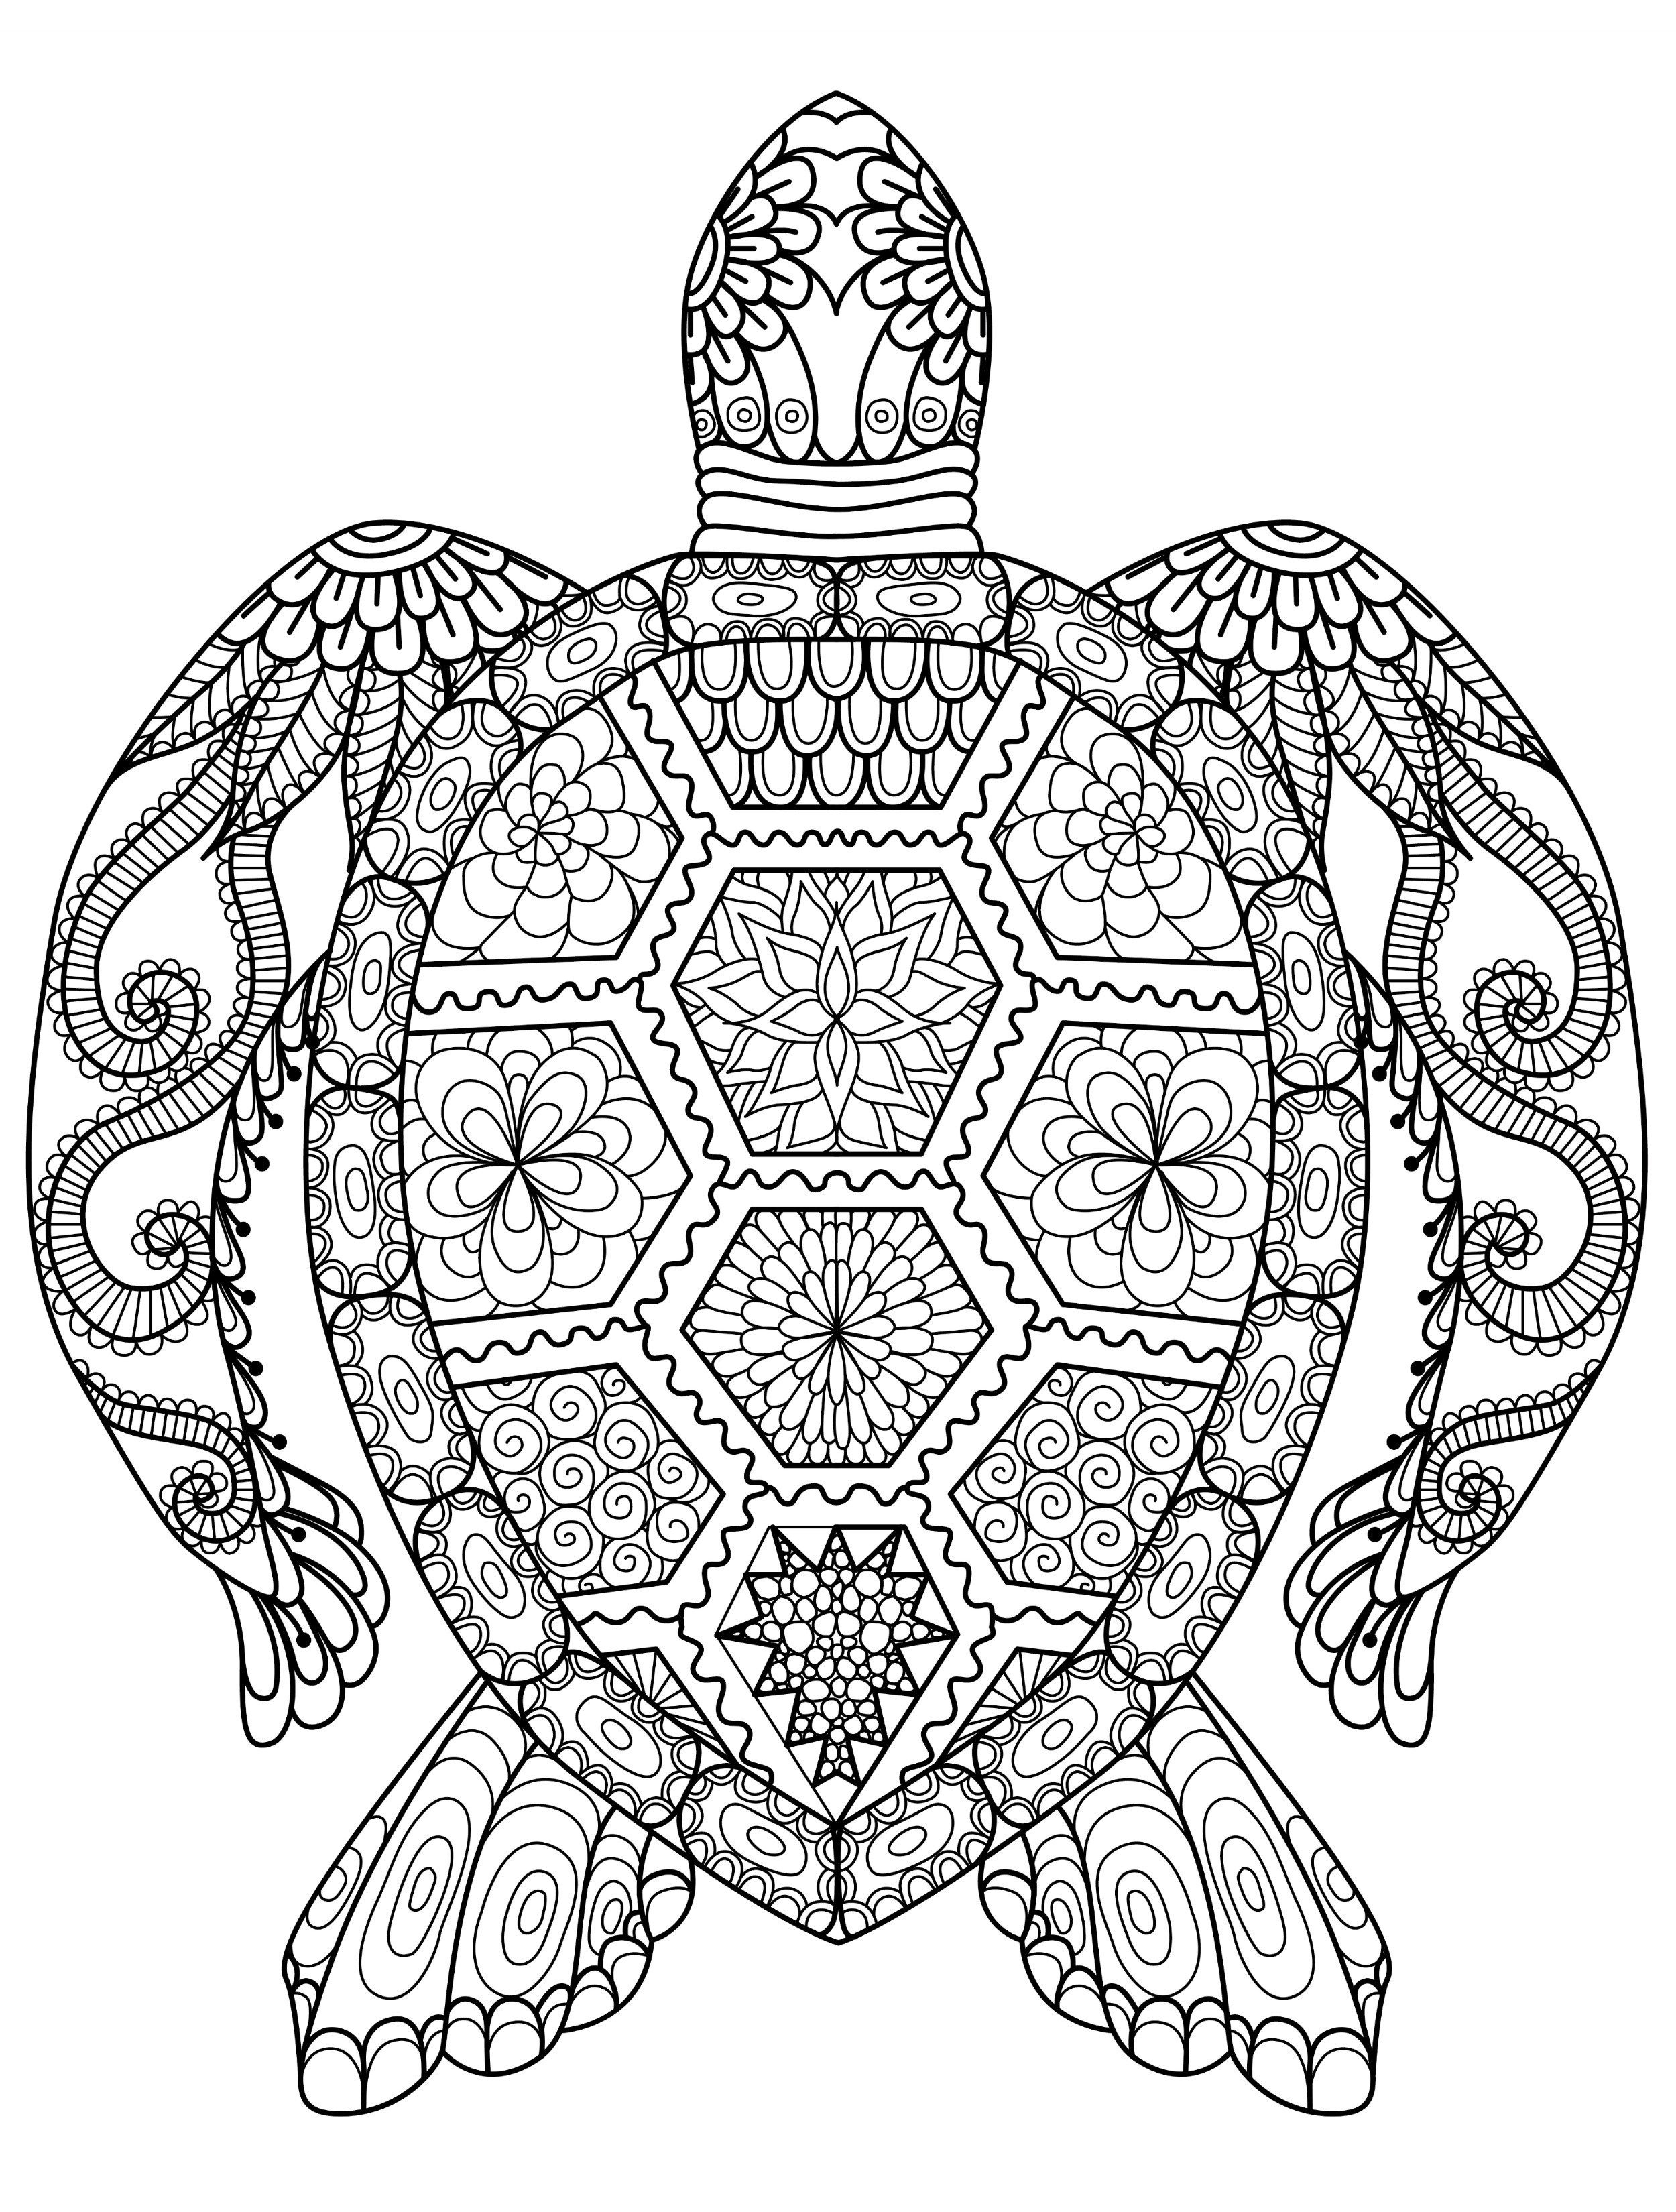 20 Gorgeous Free Printable Adult Coloring Pages … | Adult Co - Free Printable Coloring Book Pages For Adults